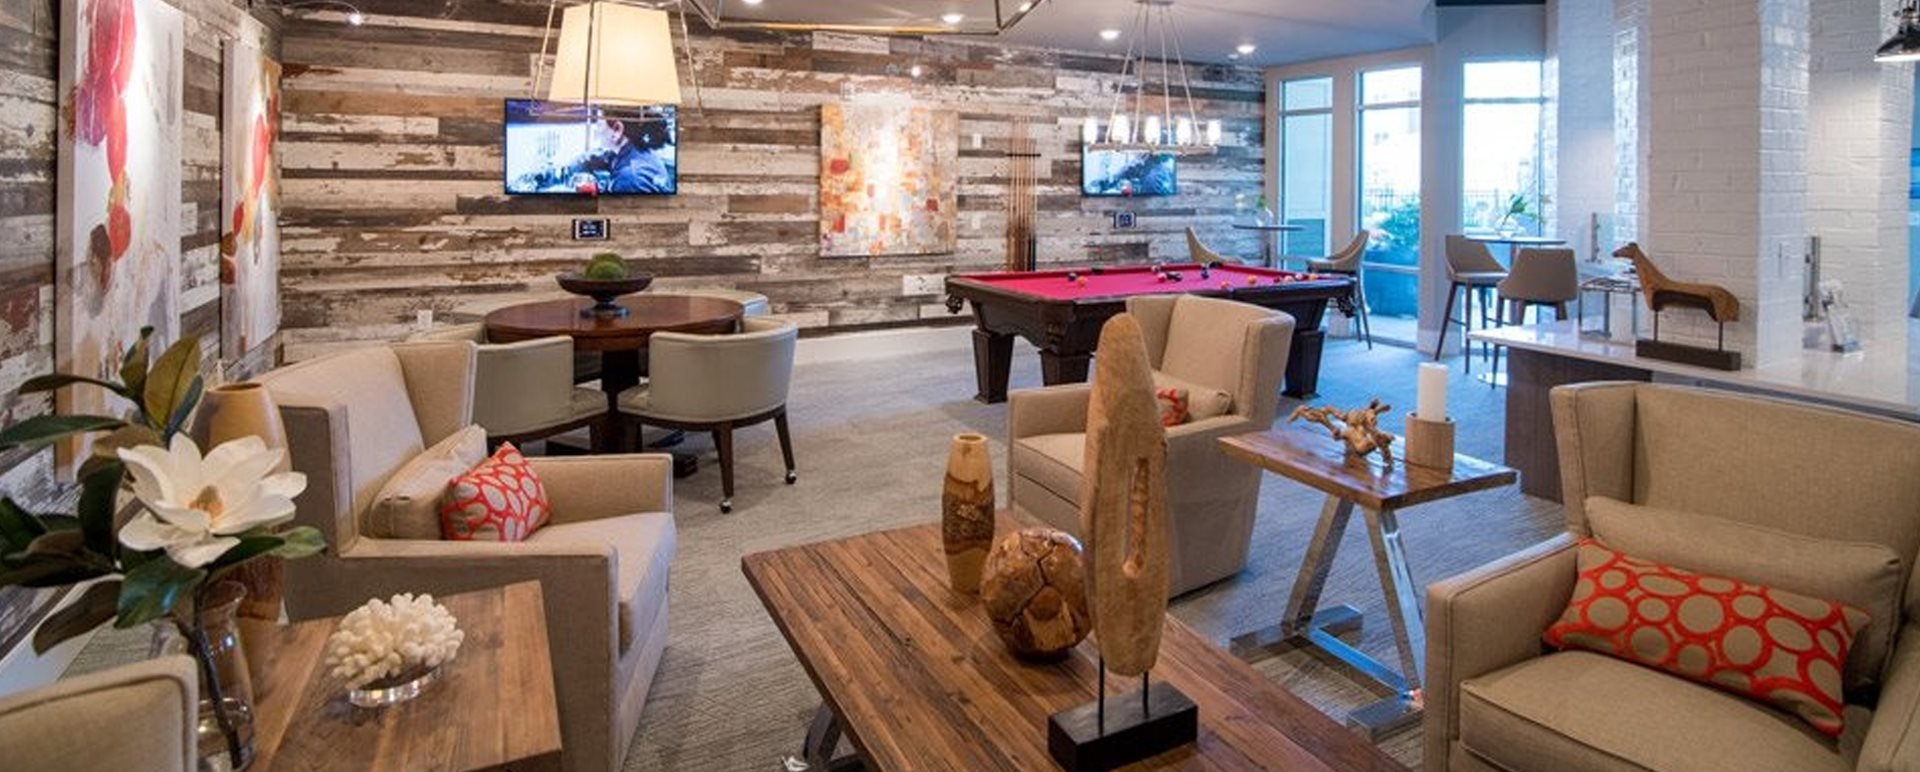 Luxurious Clubhouse With Ample Sitting And Television at Meridian at Fairfield Park, Wilmington